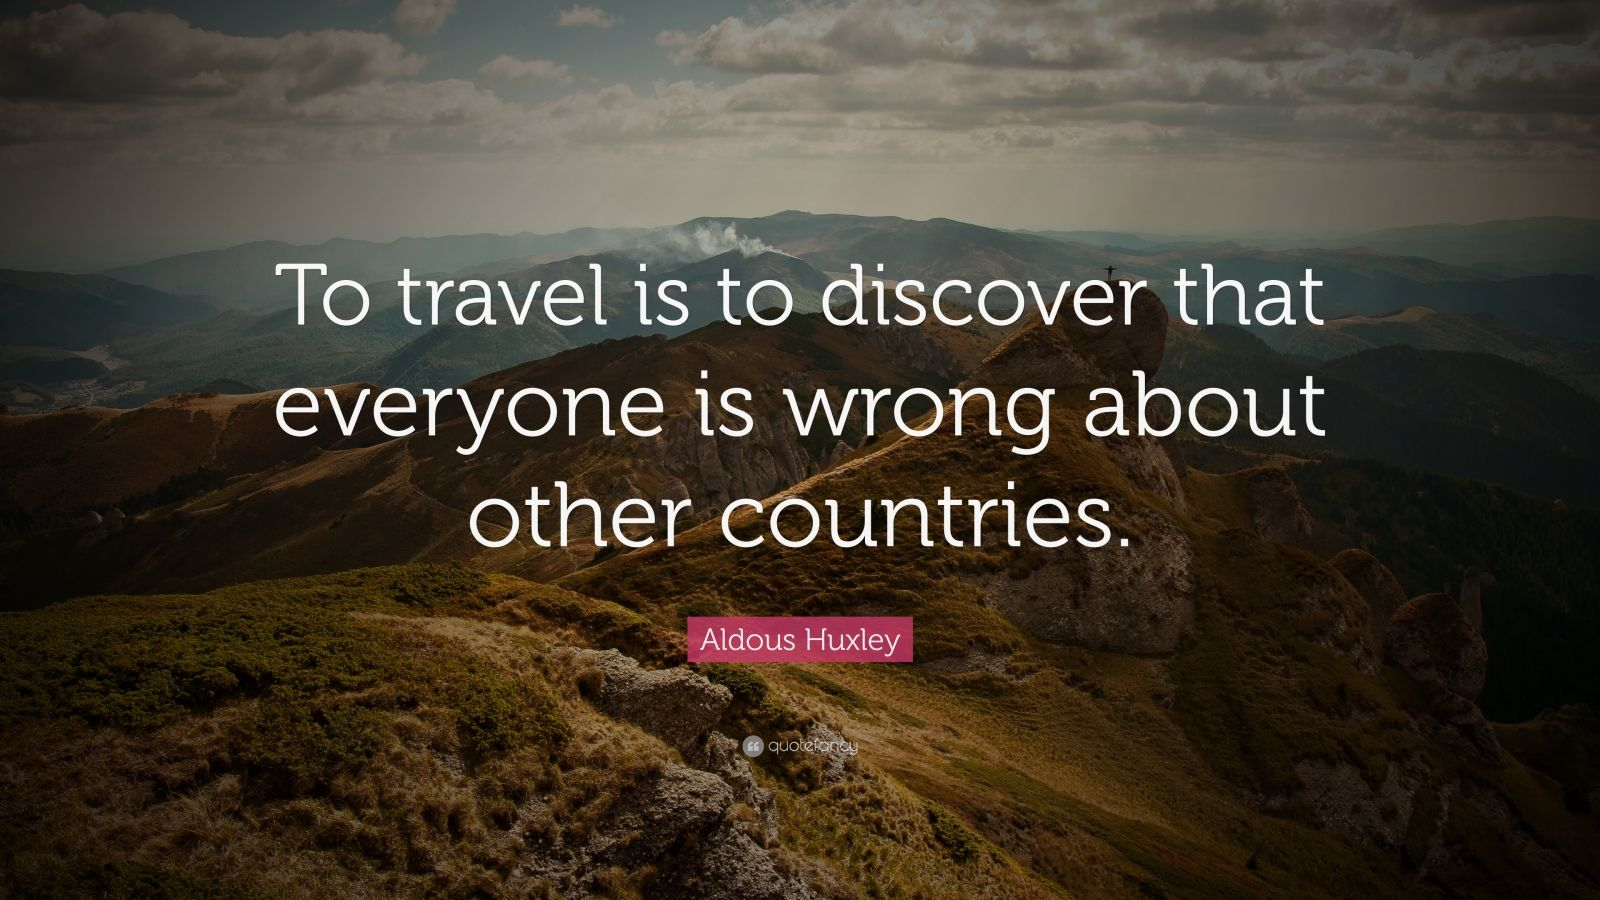 """Aldous Huxley Quote: """"To travel is to discover that everyone is wrong about other countries."""""""